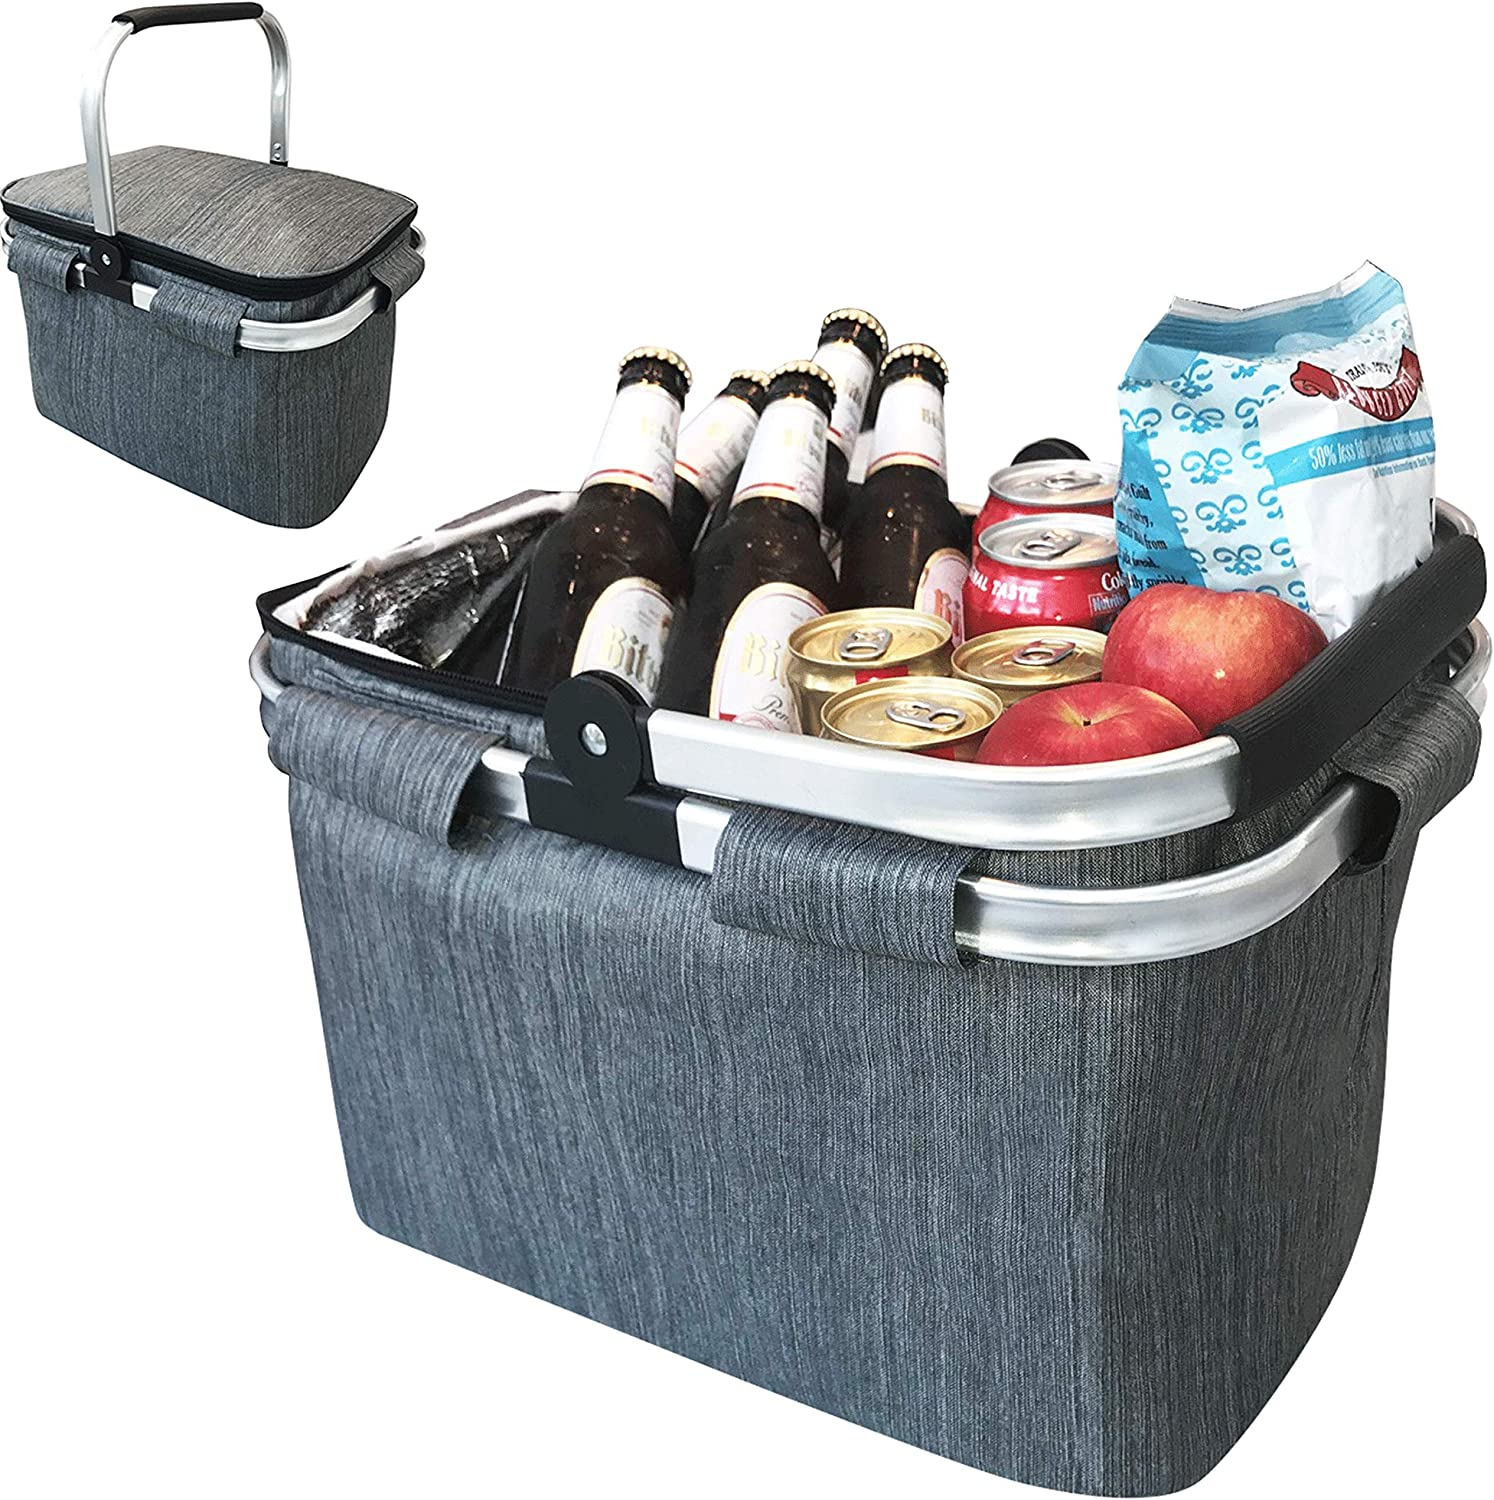 Large Insulated Picnic Basket Cooler | 7.7 Gal Capacity Leakproof Folding Collapsible Portable Market Basket Bag Set Aluminum Handles for Travel, Shopping and Camping | Keeps Wine, Food & Drinks